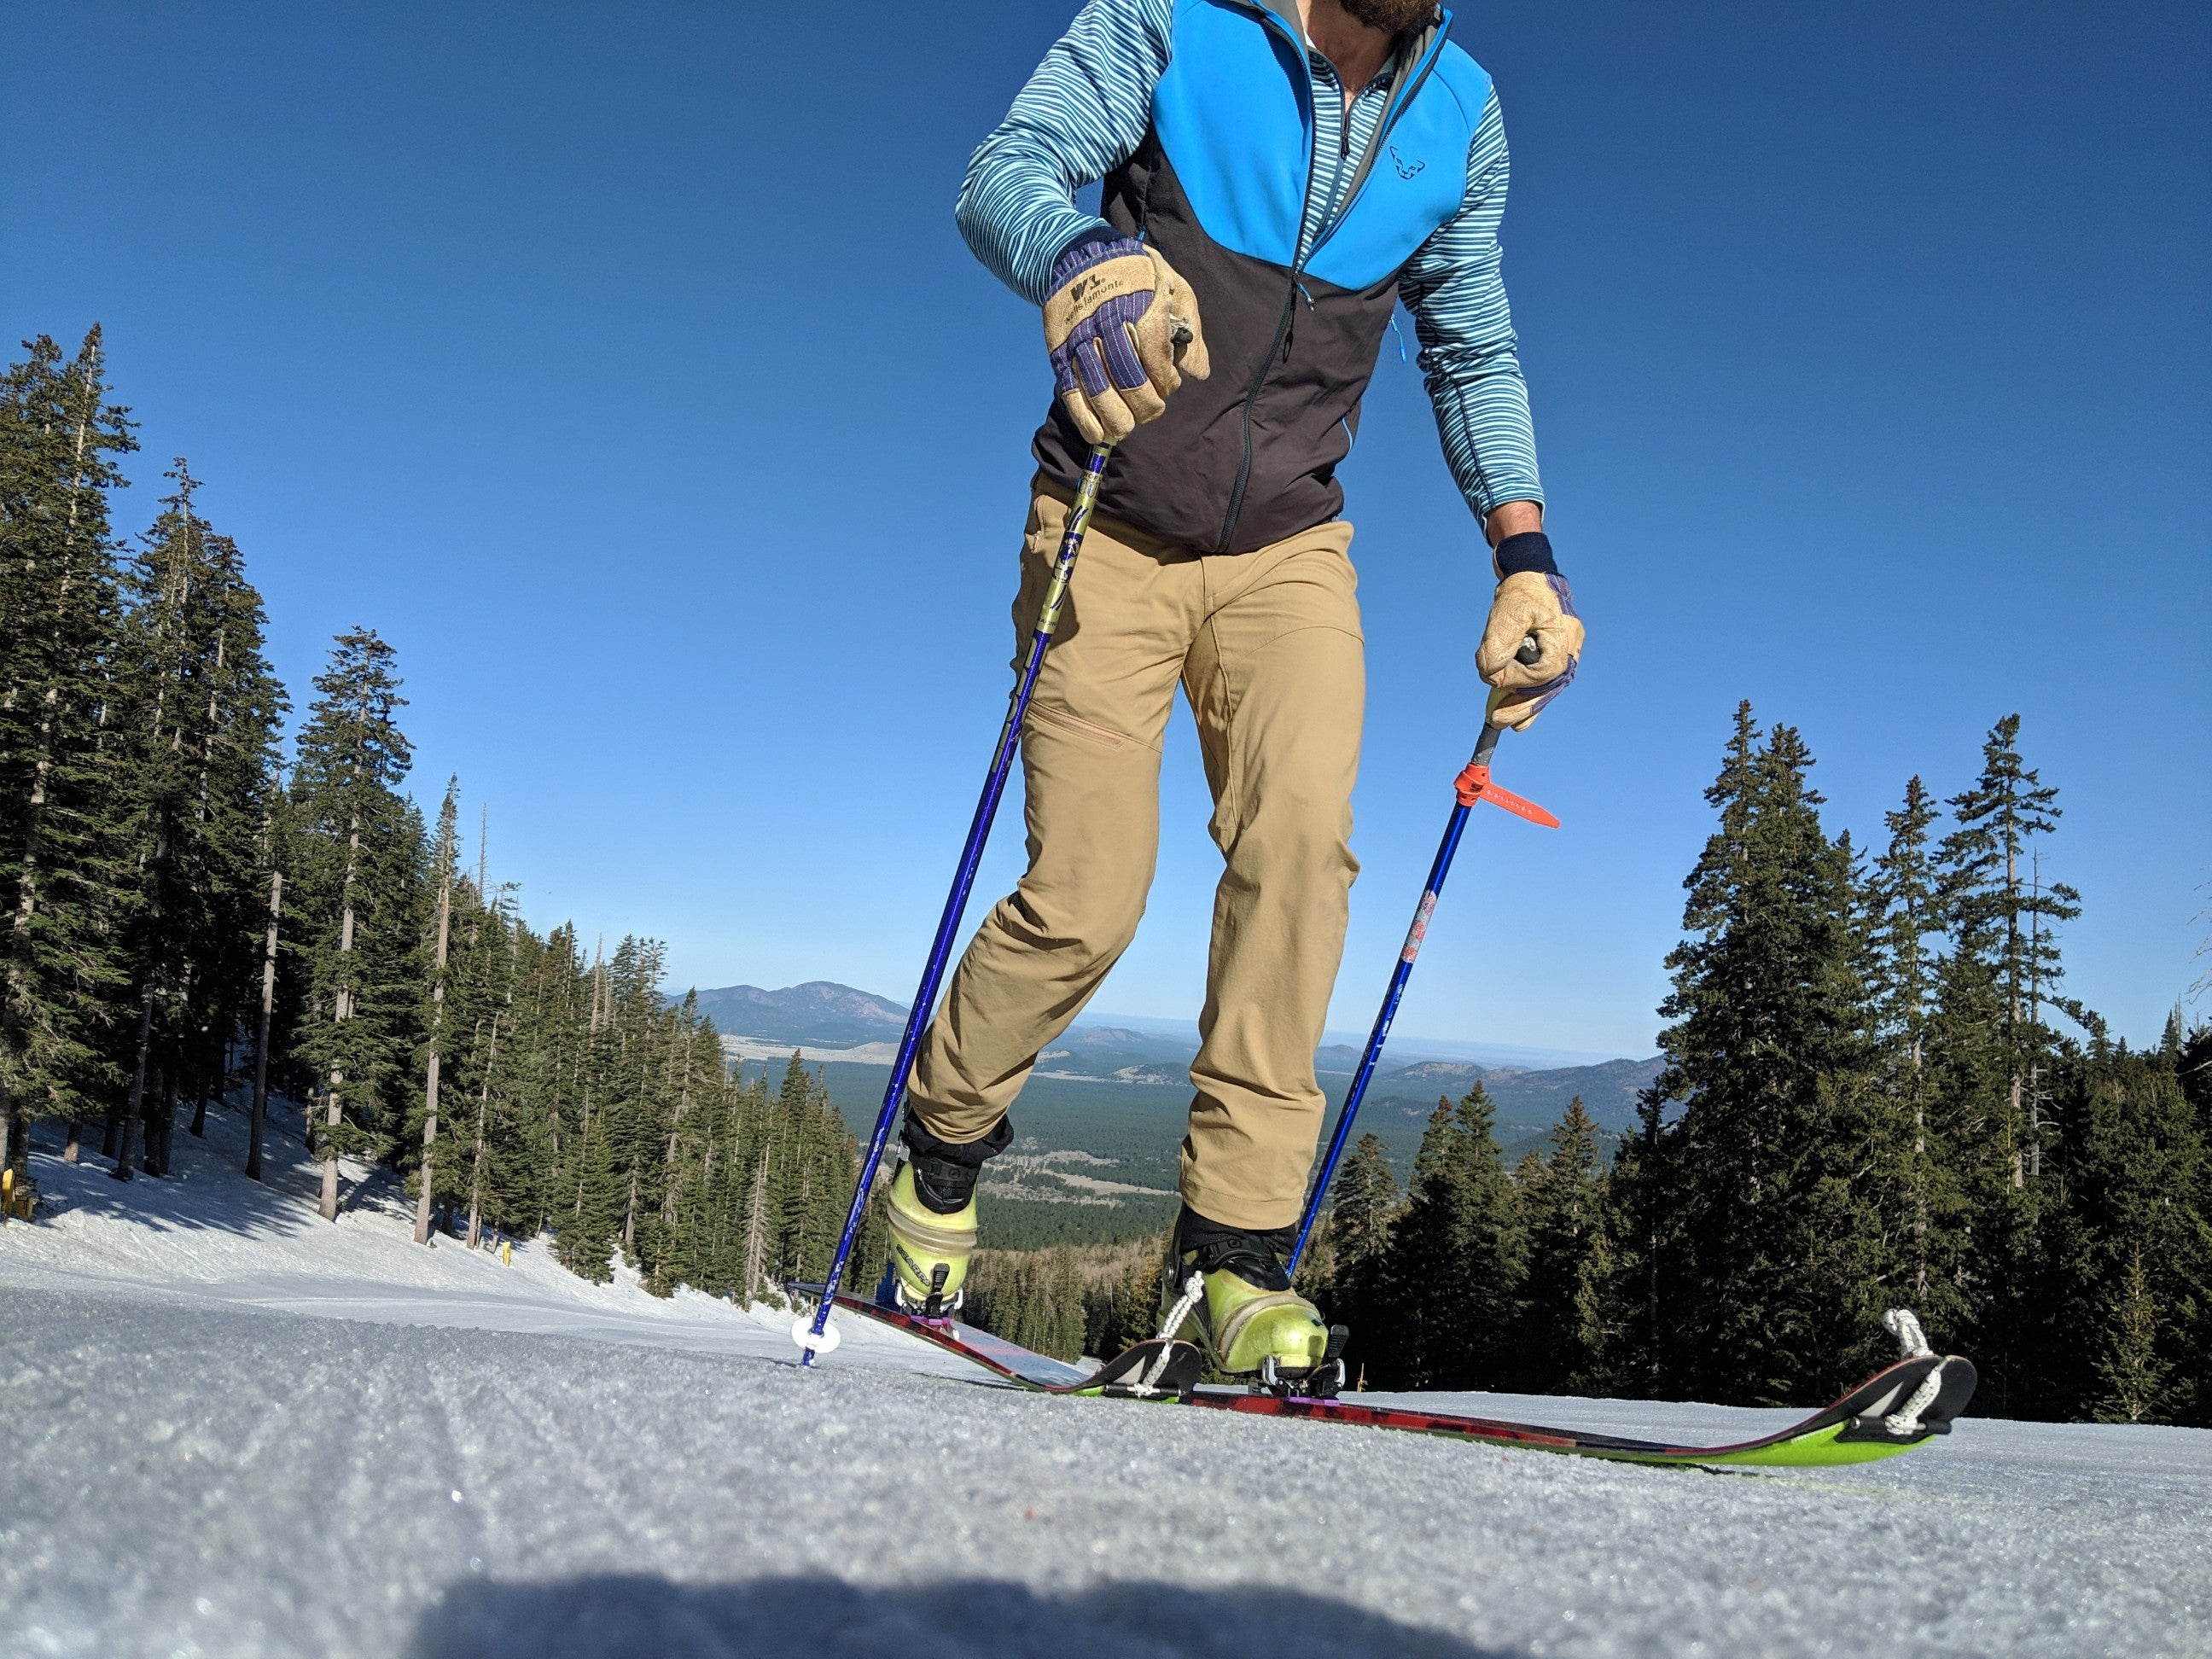 Uphill skiing requires a lot of gear.